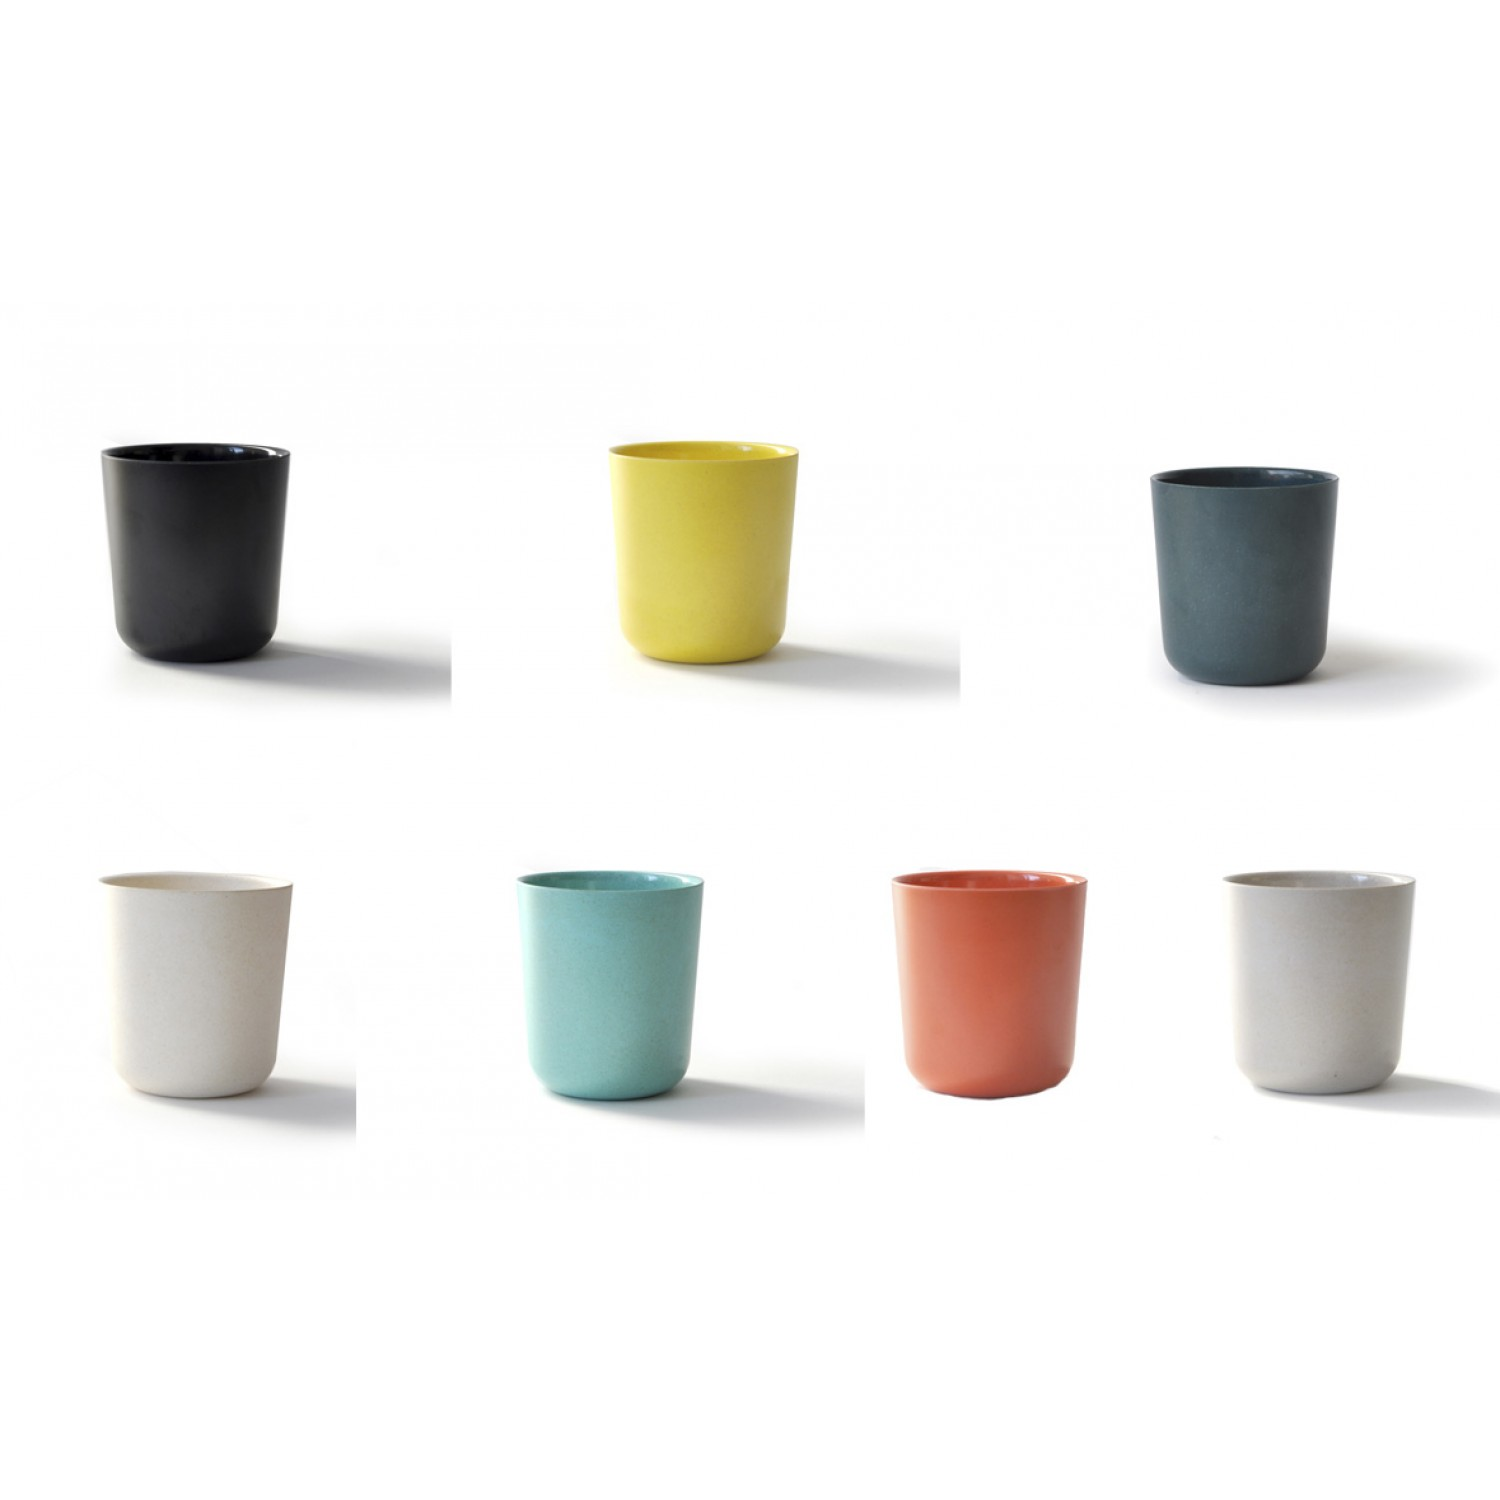 BIOBU GUSTO Medium Cup of Bamboo by Ekobo